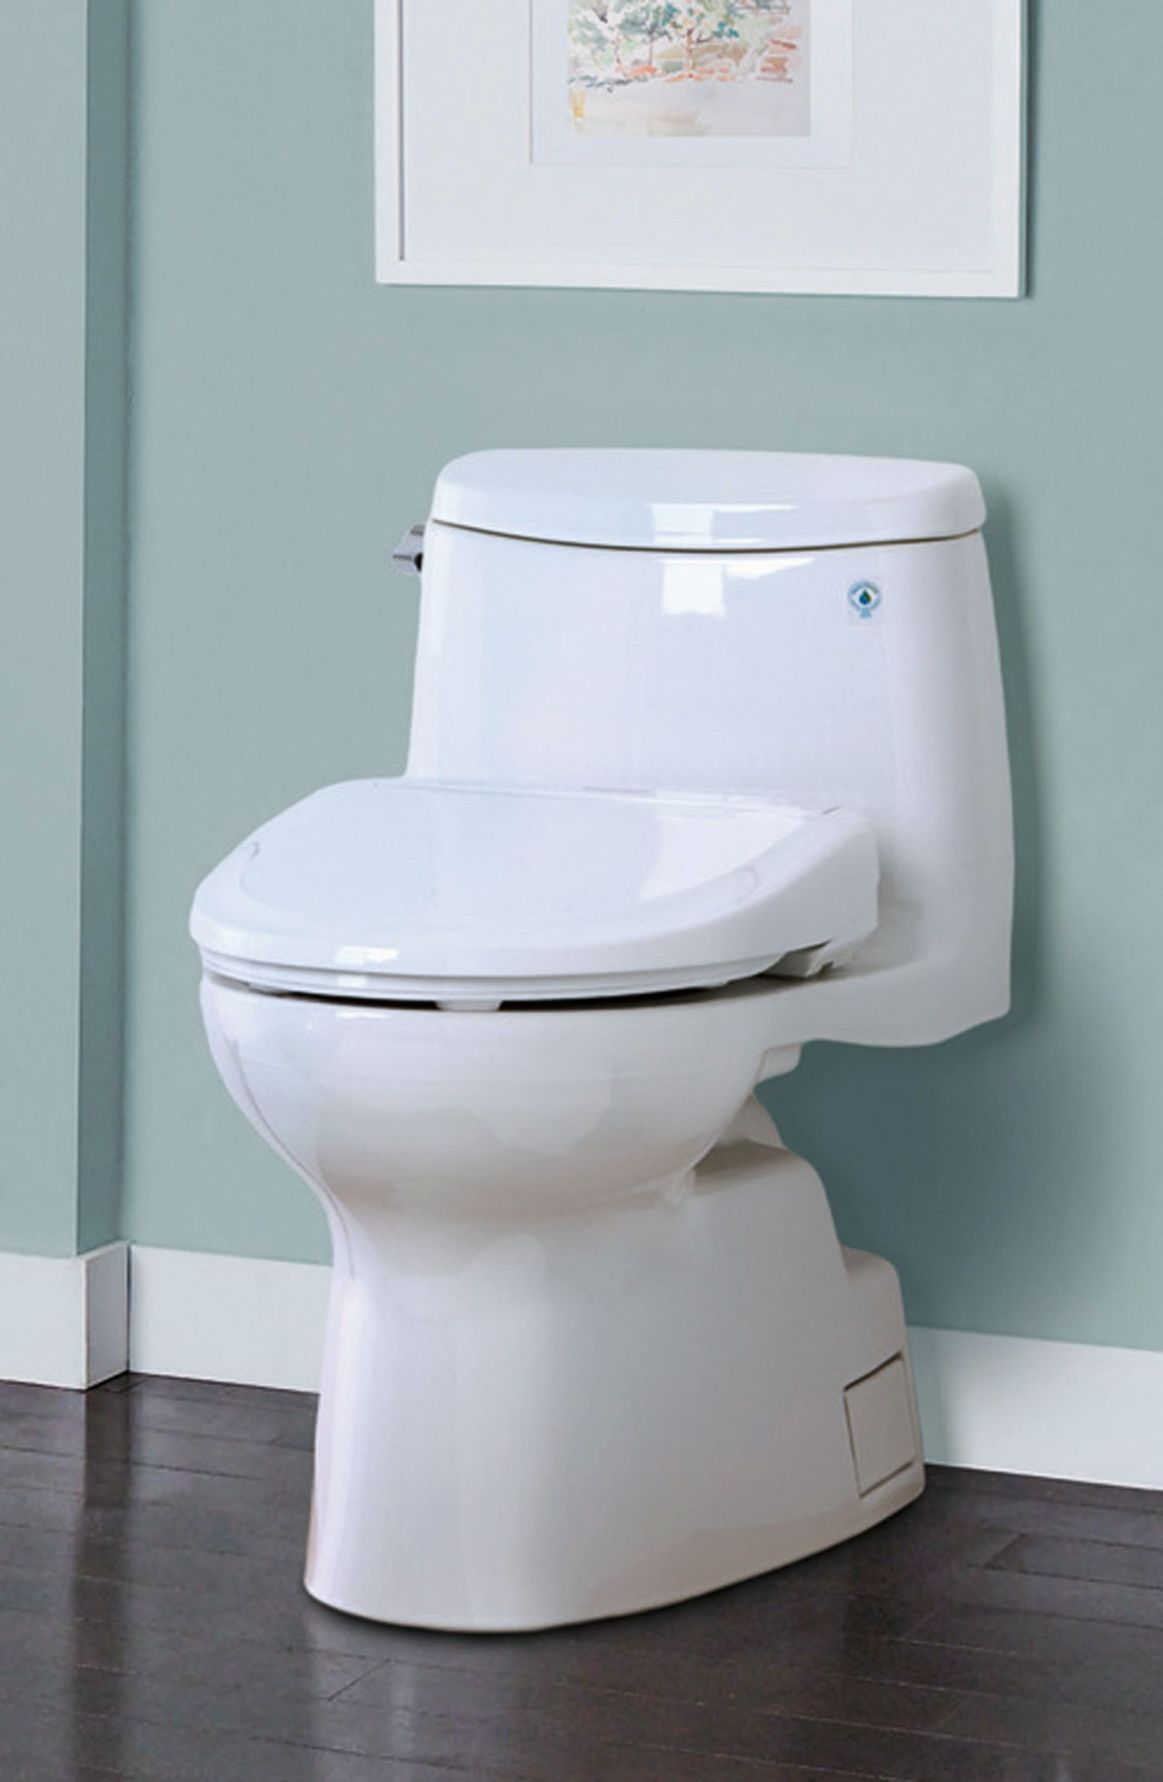 High-tech toilet seats: No hands or paper required | Home and Garden ...